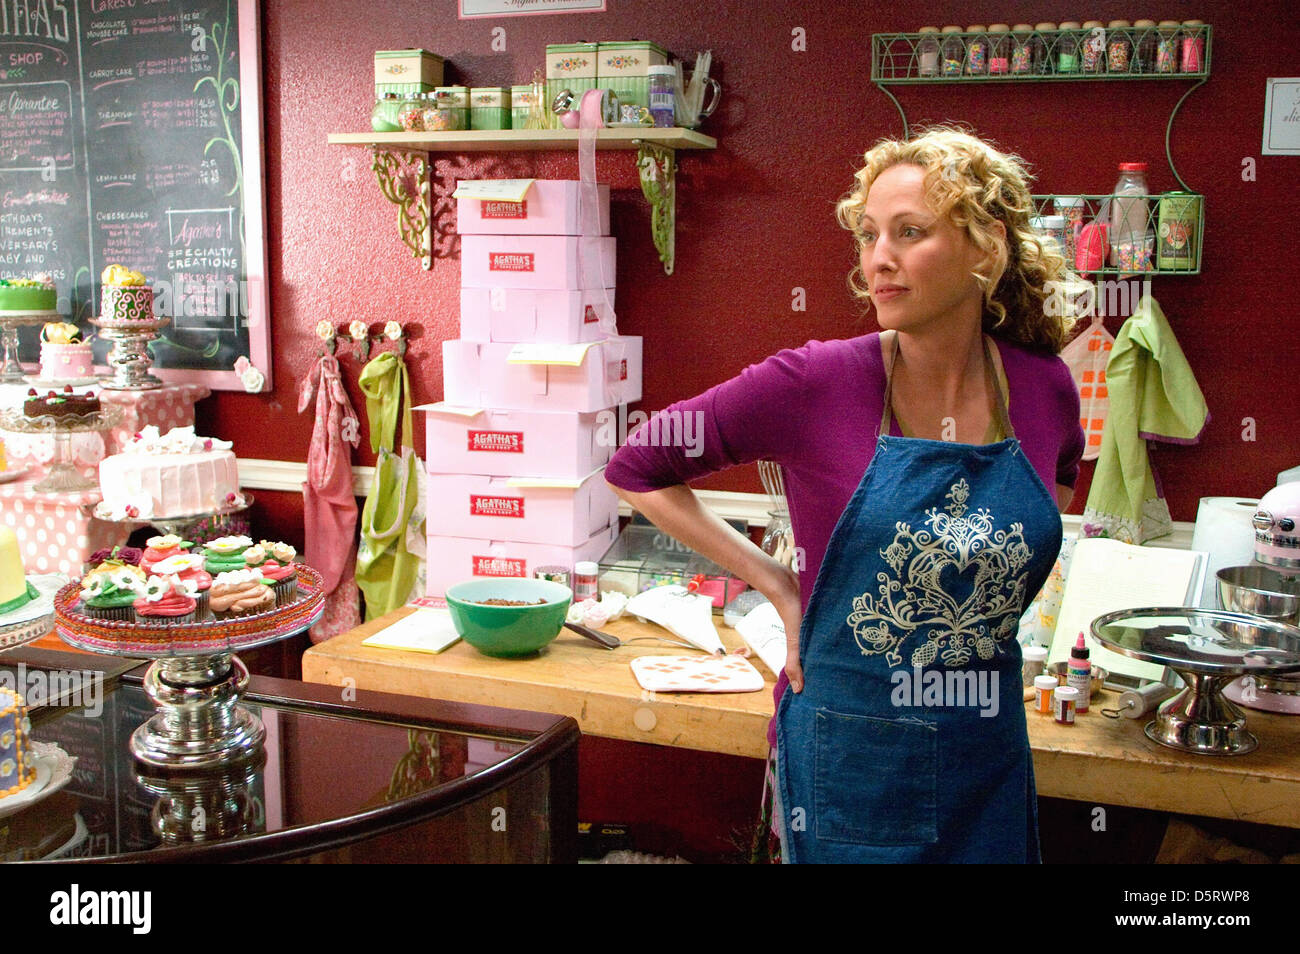 VIRGINIA MADSEN THE NUMBER 23 (2007) - Stock Image